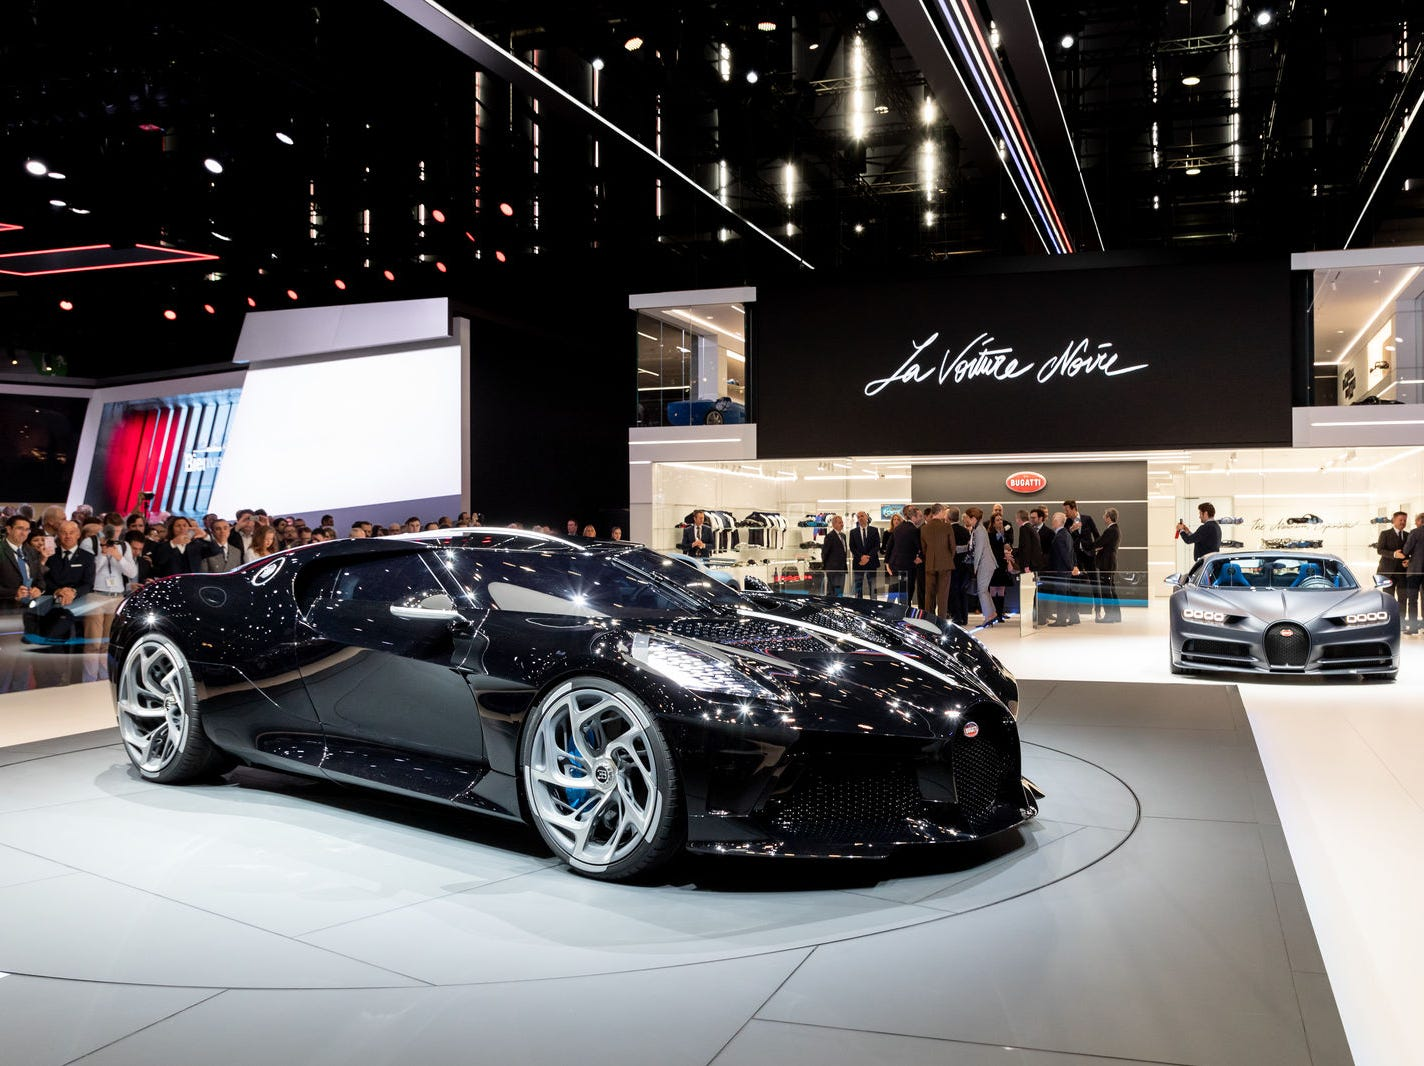 Bugatti has not said exactly how fast the 'hyper car' goes. However, the specs are similar the Bugatti's Chiron, which reaches 62 mph in 2.4 seconds and has a top speed of 261 mph.